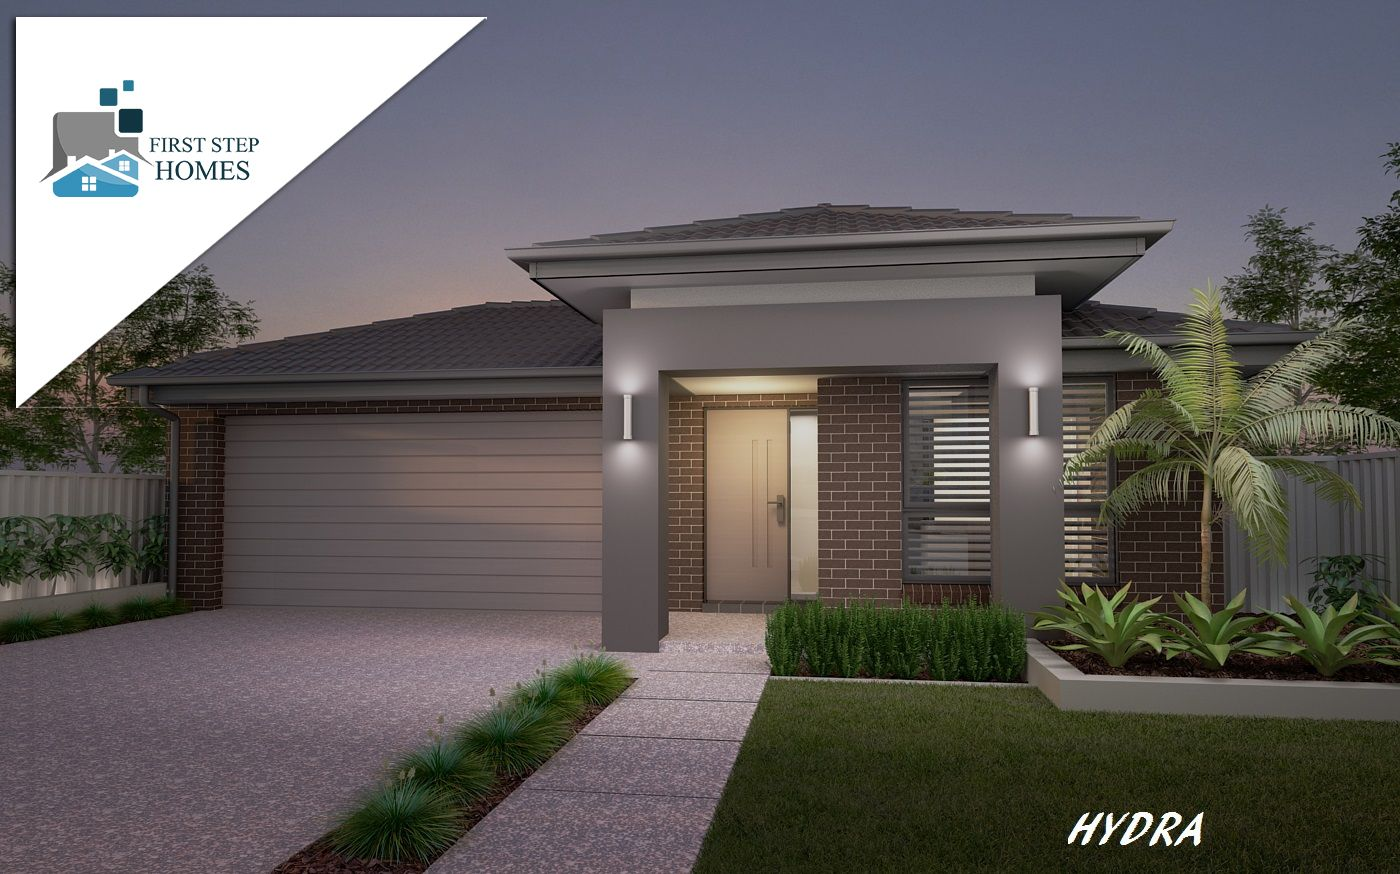 Lot 434 Otago St, Warralily Estate, Armstrong Creek VIC 3217, Image 0